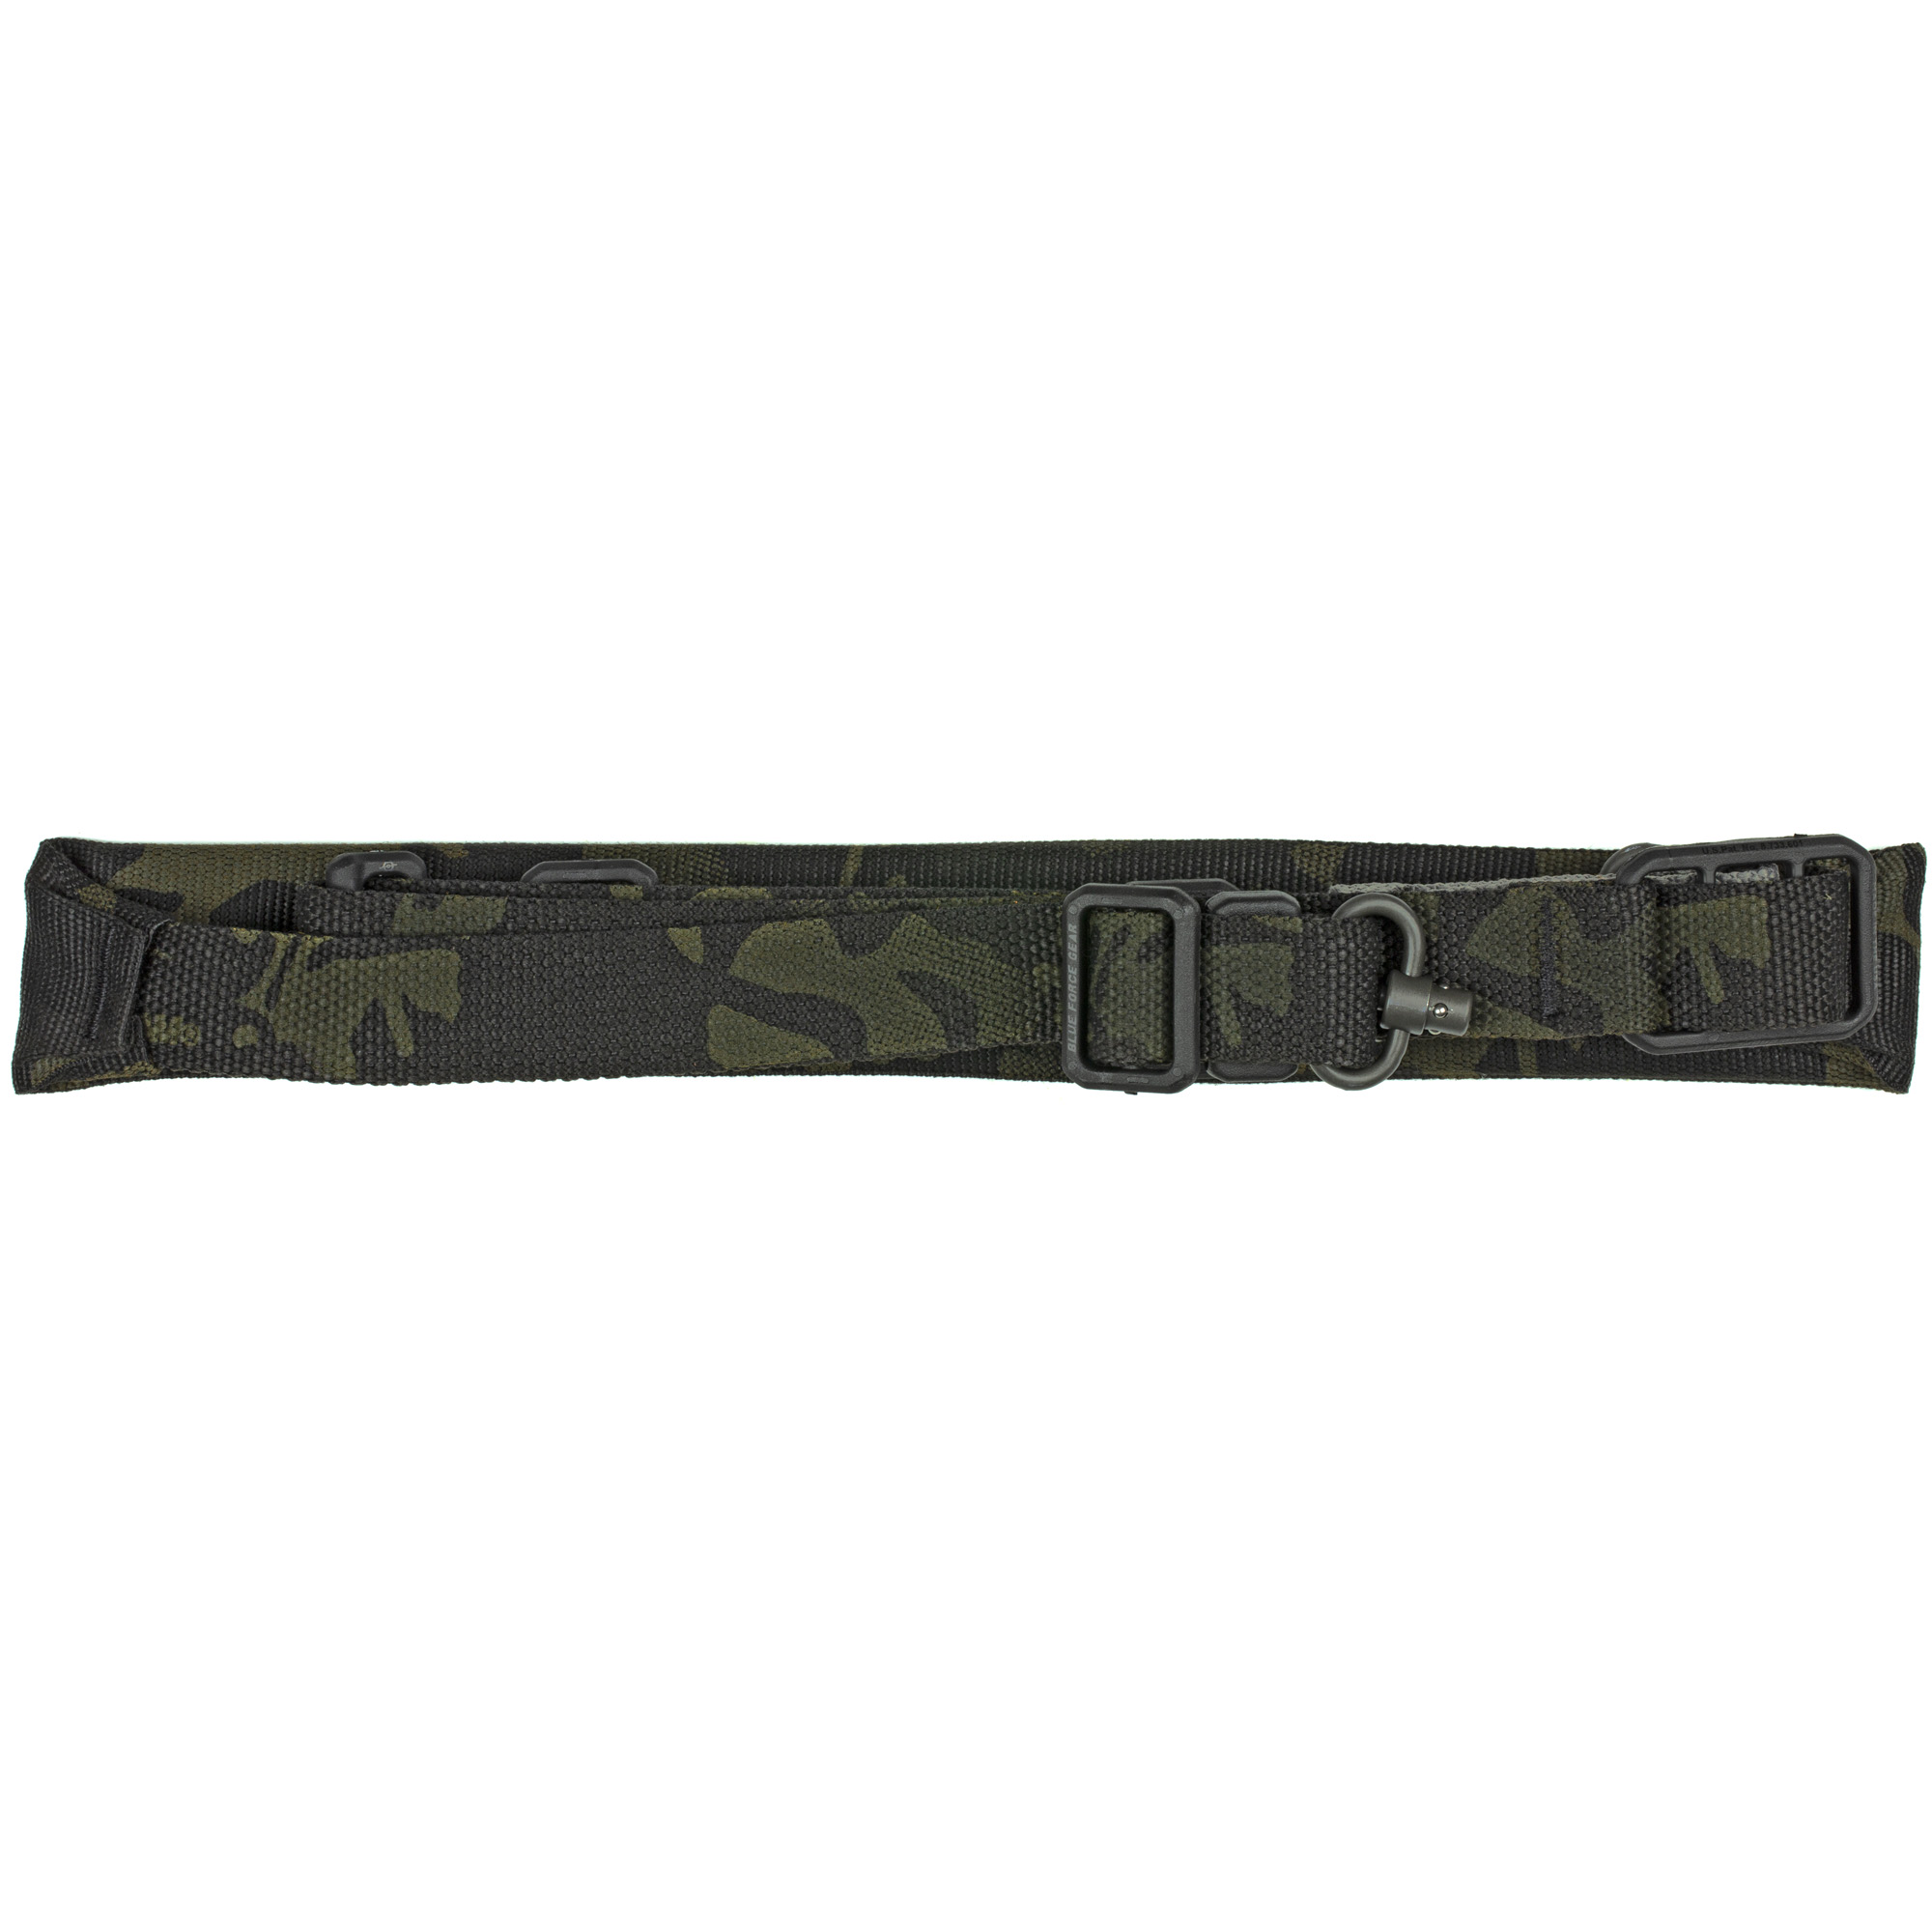 Blue Force Gear Bl Force Vickers Padded 2-1 Slng Mcb